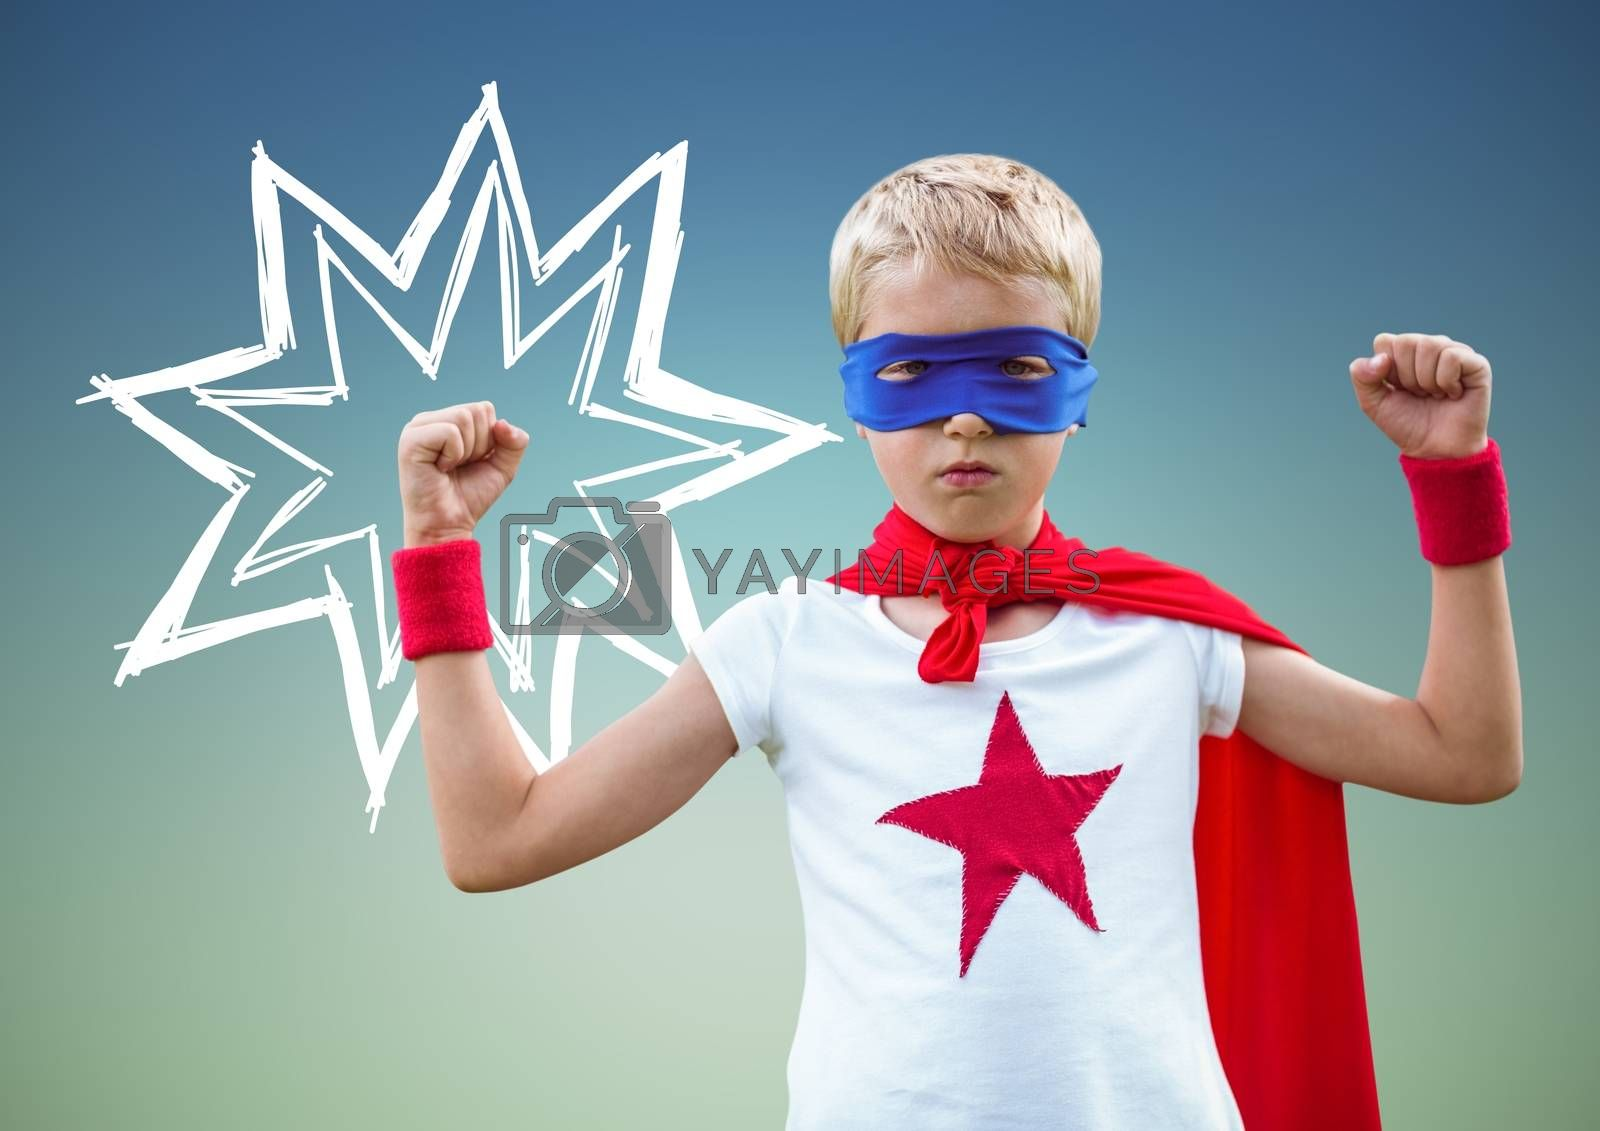 Digital composition of kid in superhero costume flexing his arms against green background